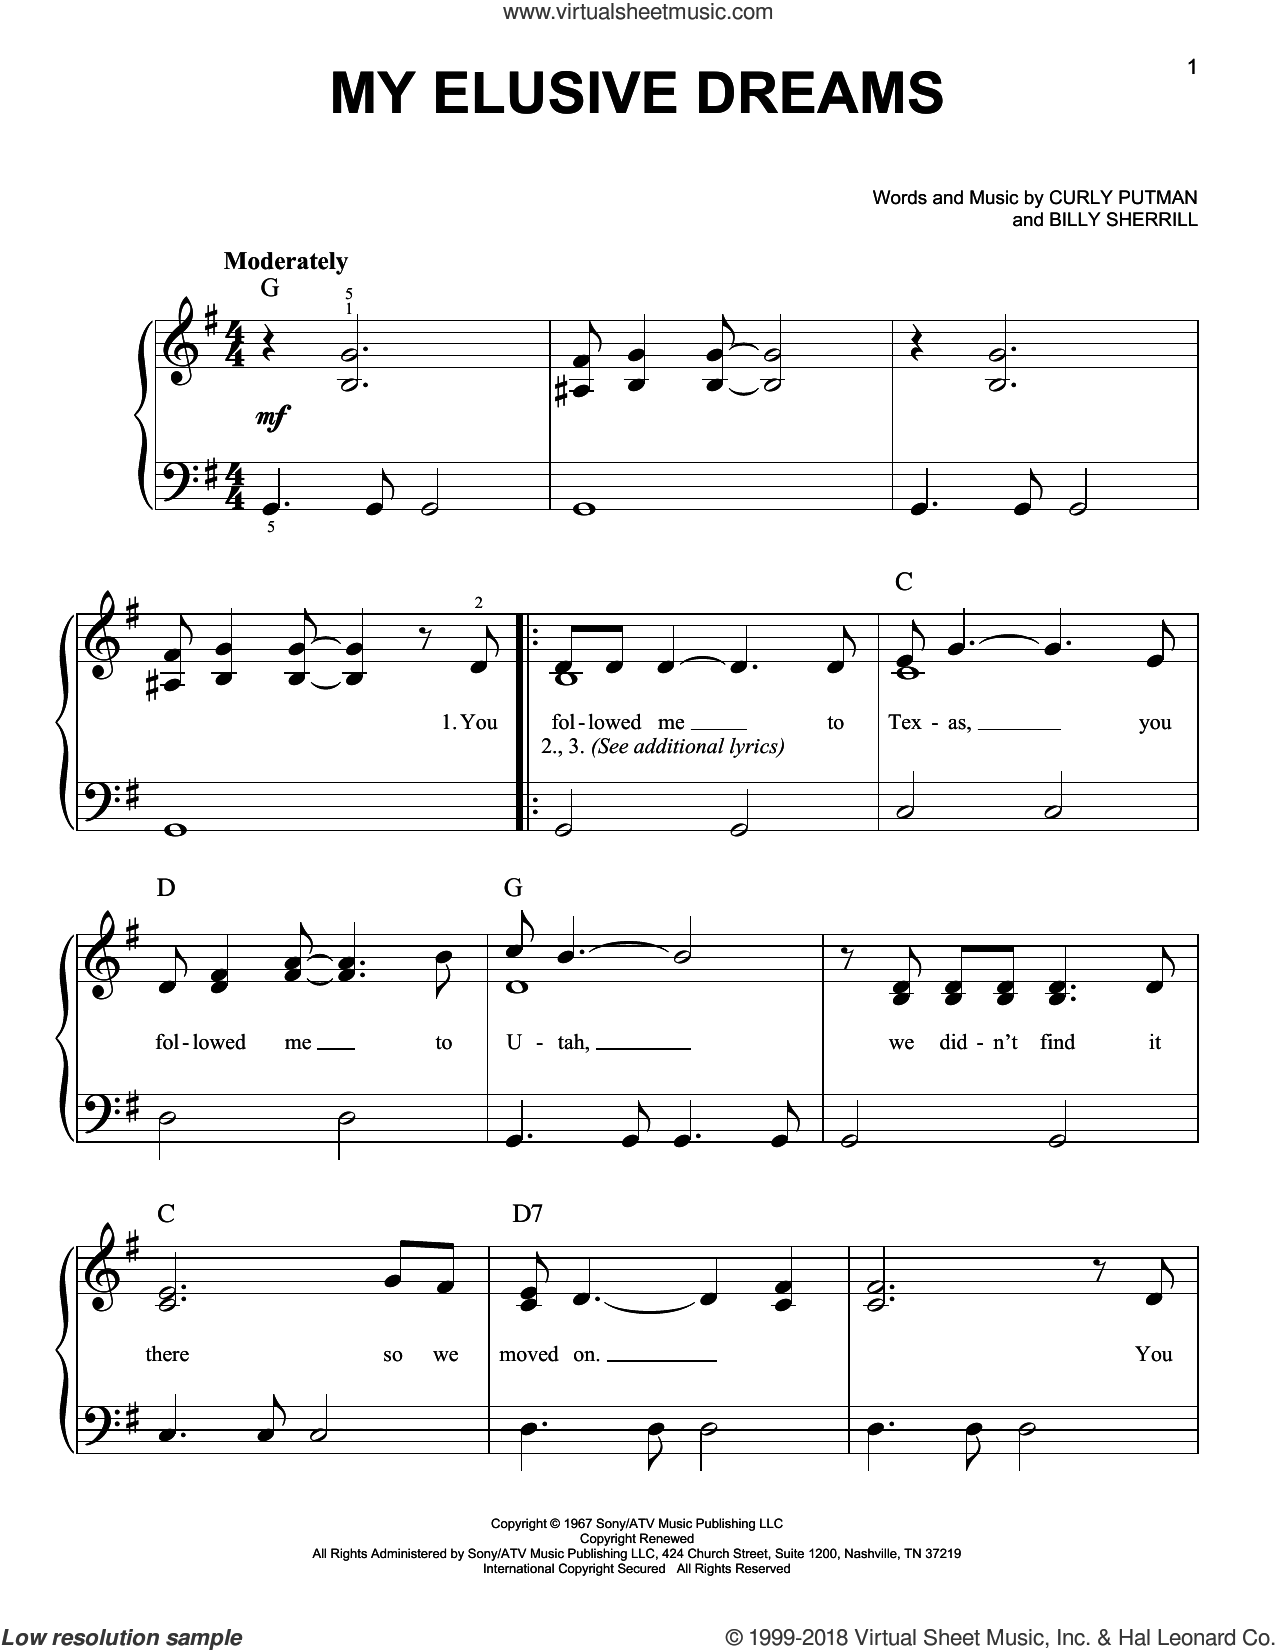 My Elusive Dreams sheet music for piano solo by Charlie Rich, Billy Sherrill and Curly Putman, easy skill level